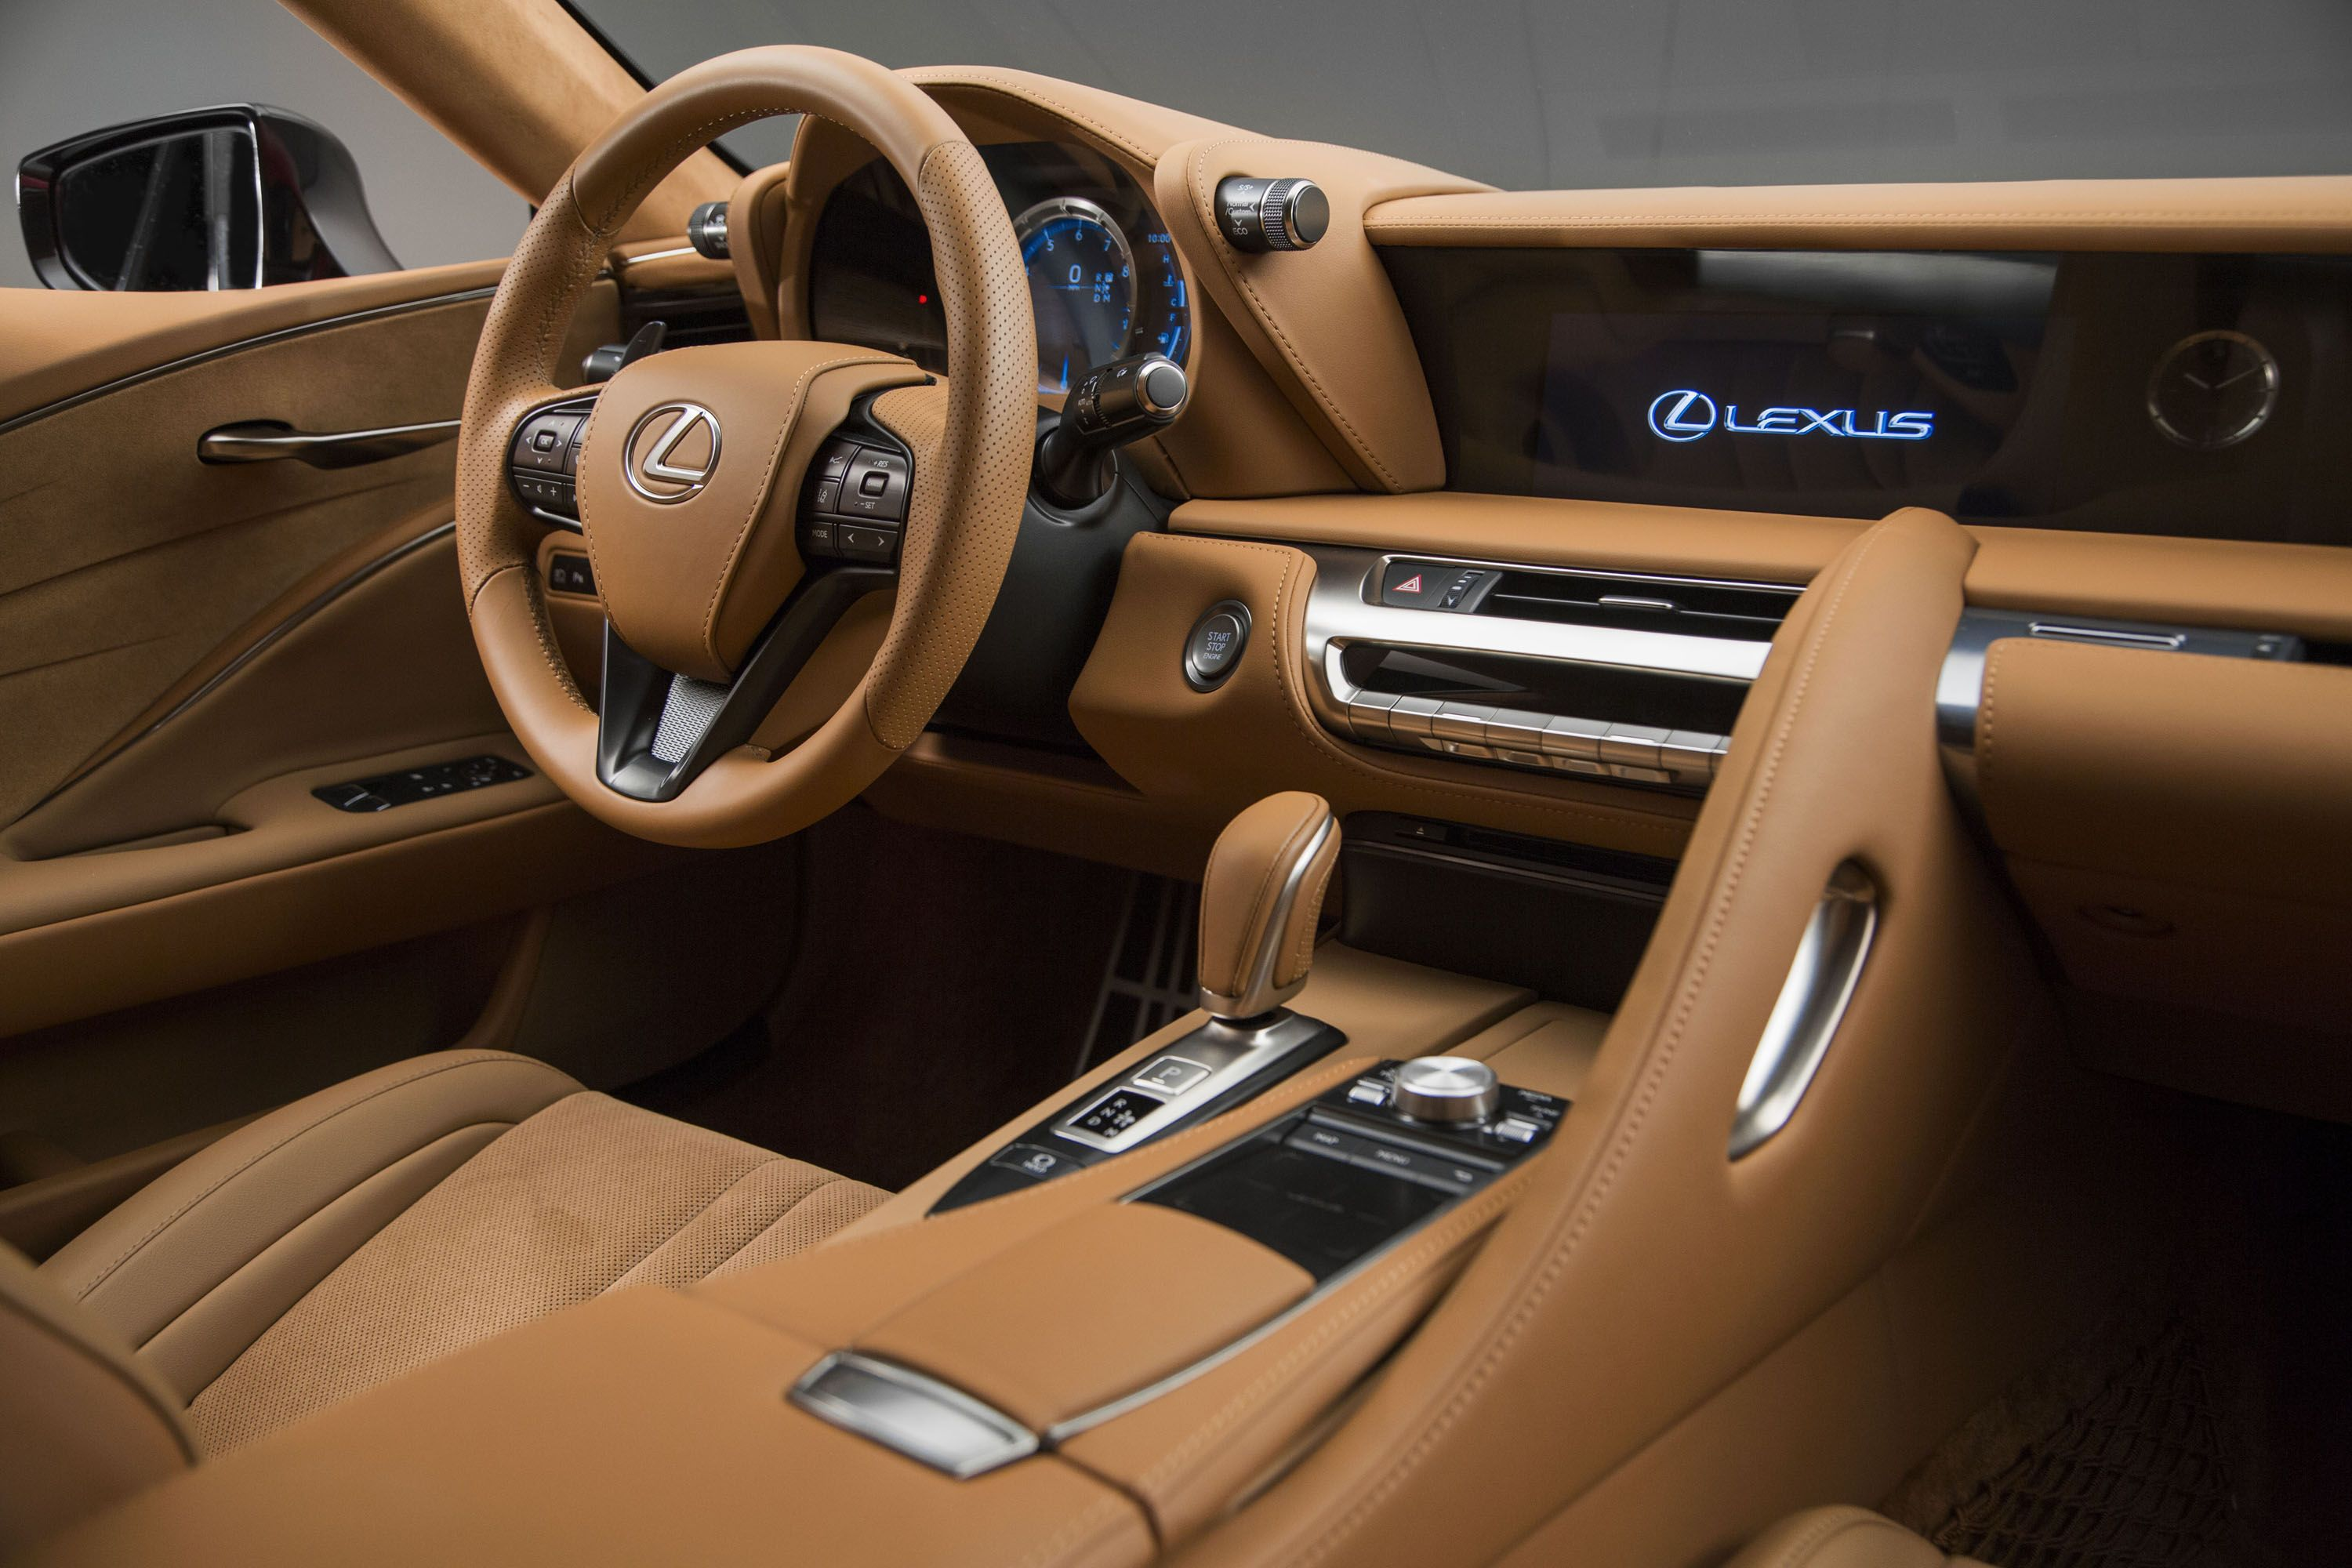 The New Lexus Lc 500 Isn T Just A New Car For The Company It S A New Rear Drive Premium Platform It Does However Get A Ve Lexus Lc Lexus Cars Lexus Sedan